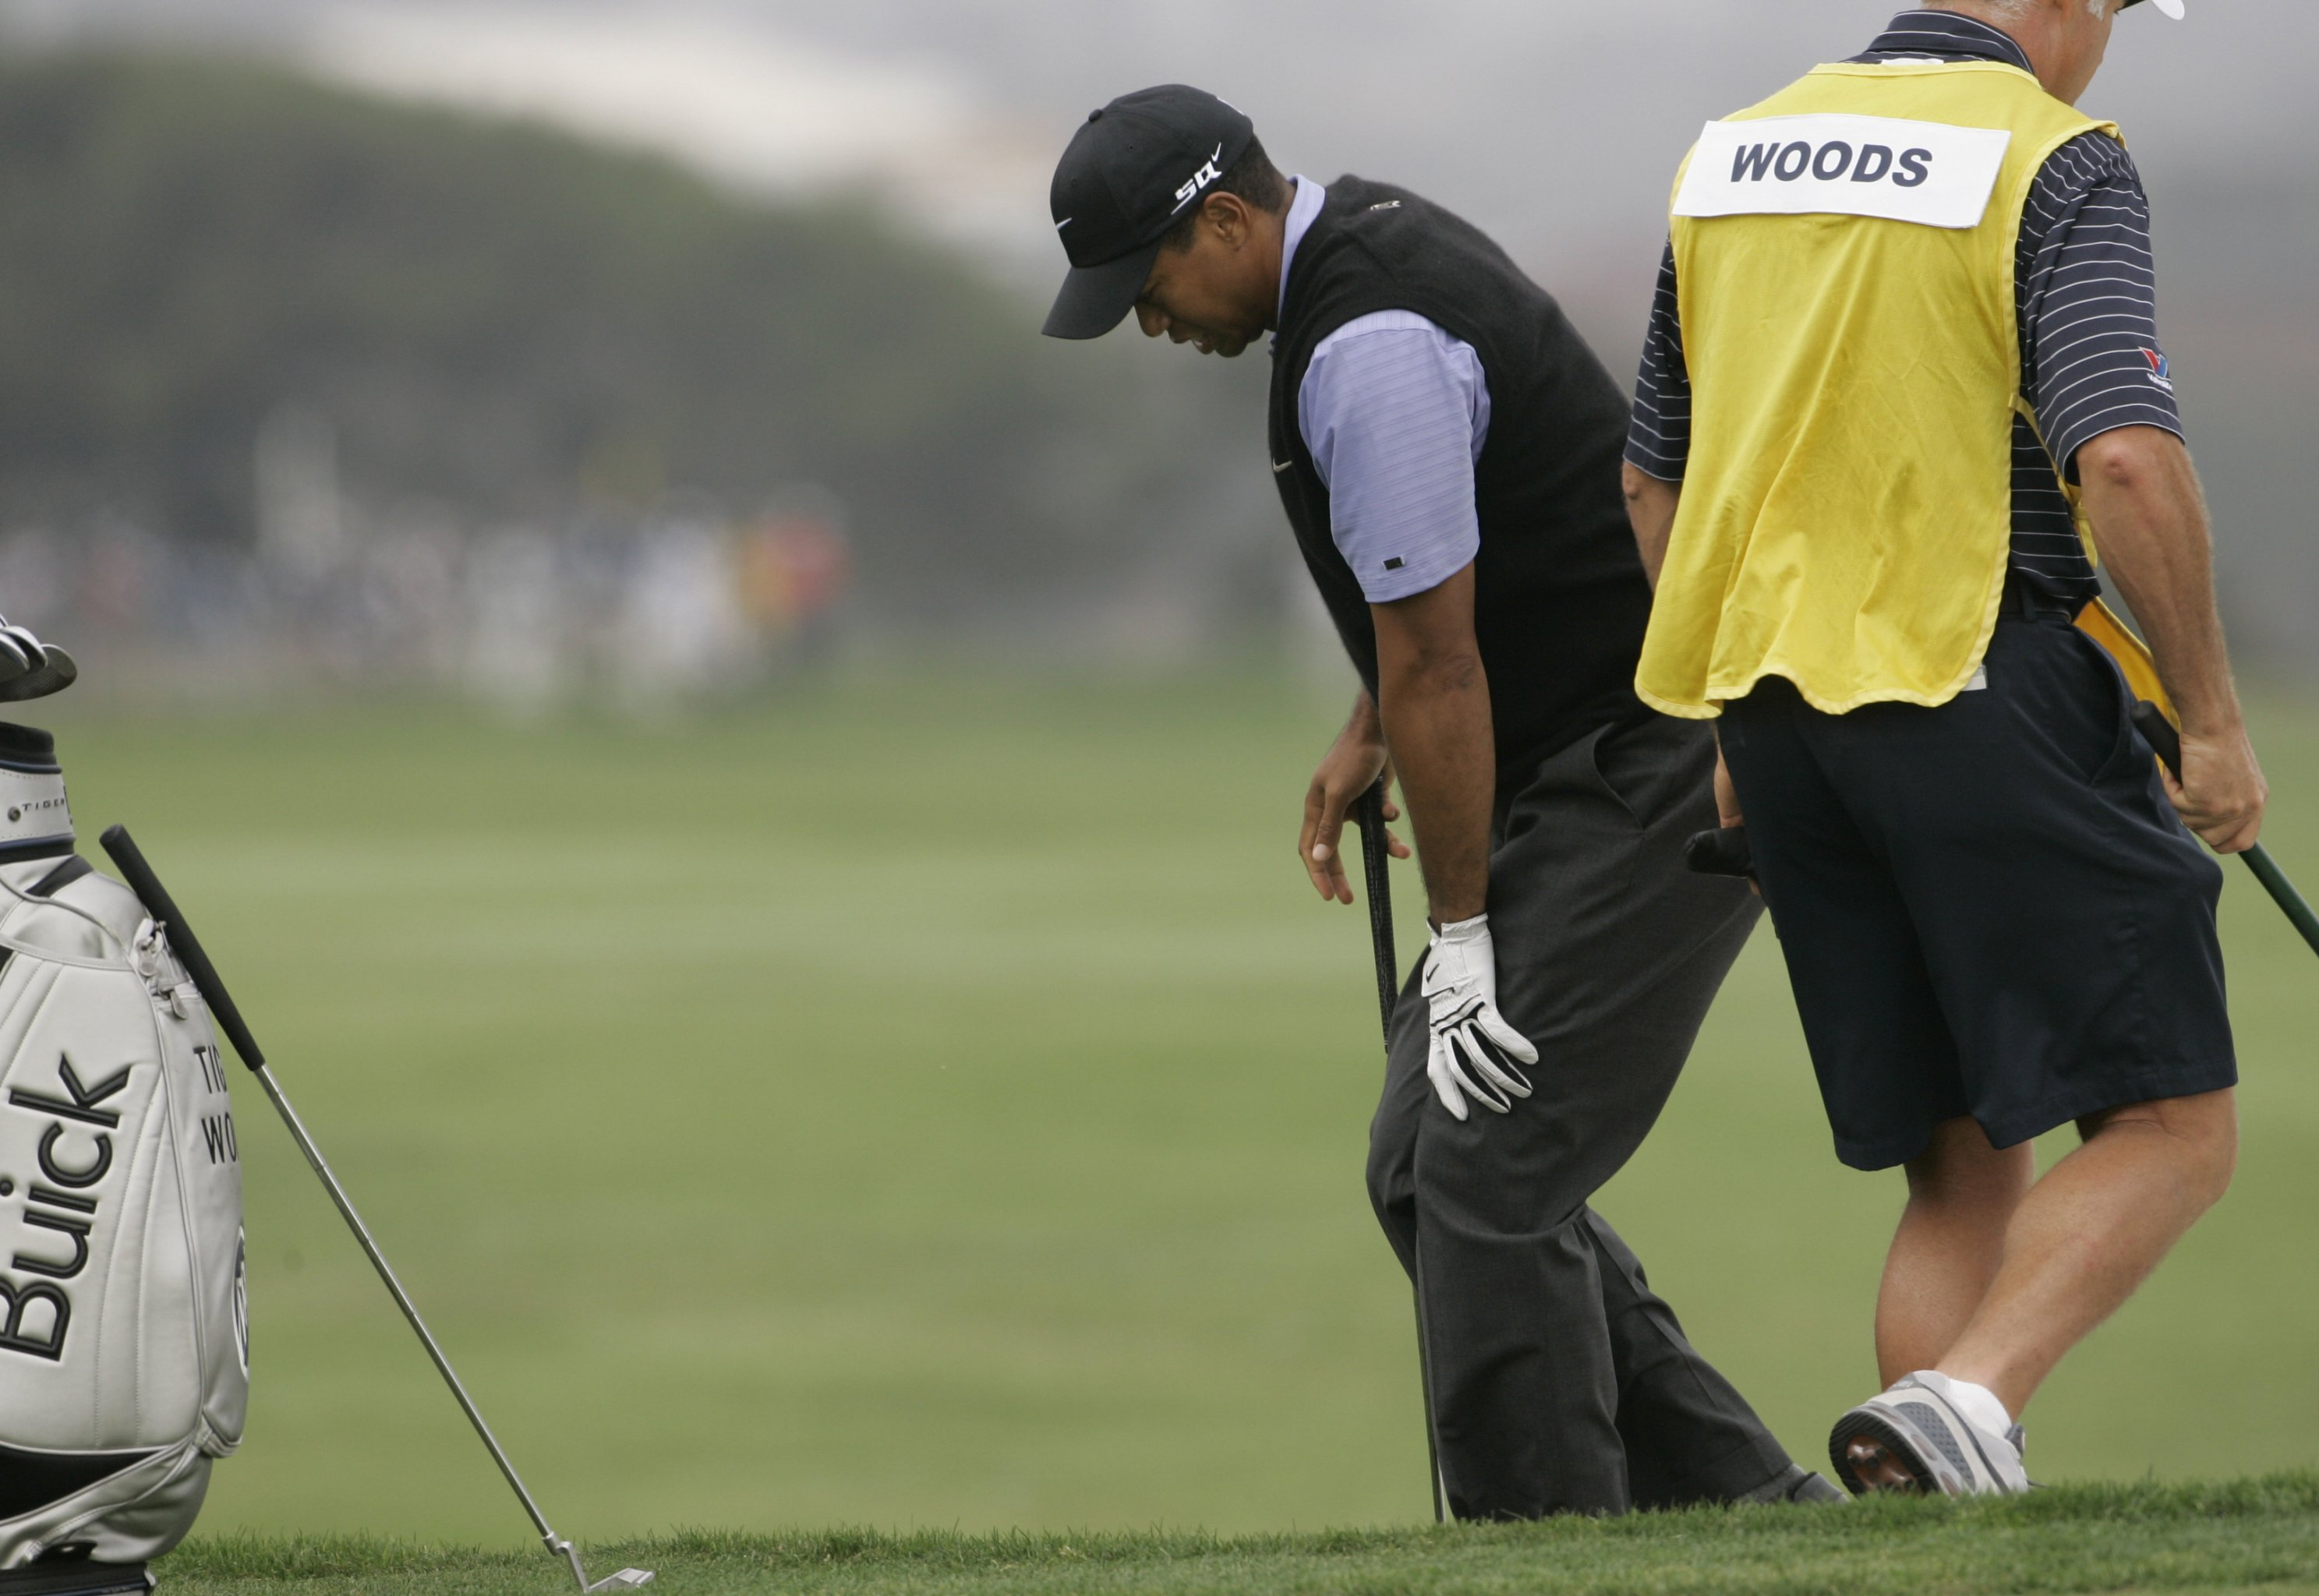 Tiger's Last Stand: Woods' Writhing, Painful 2008 US Open